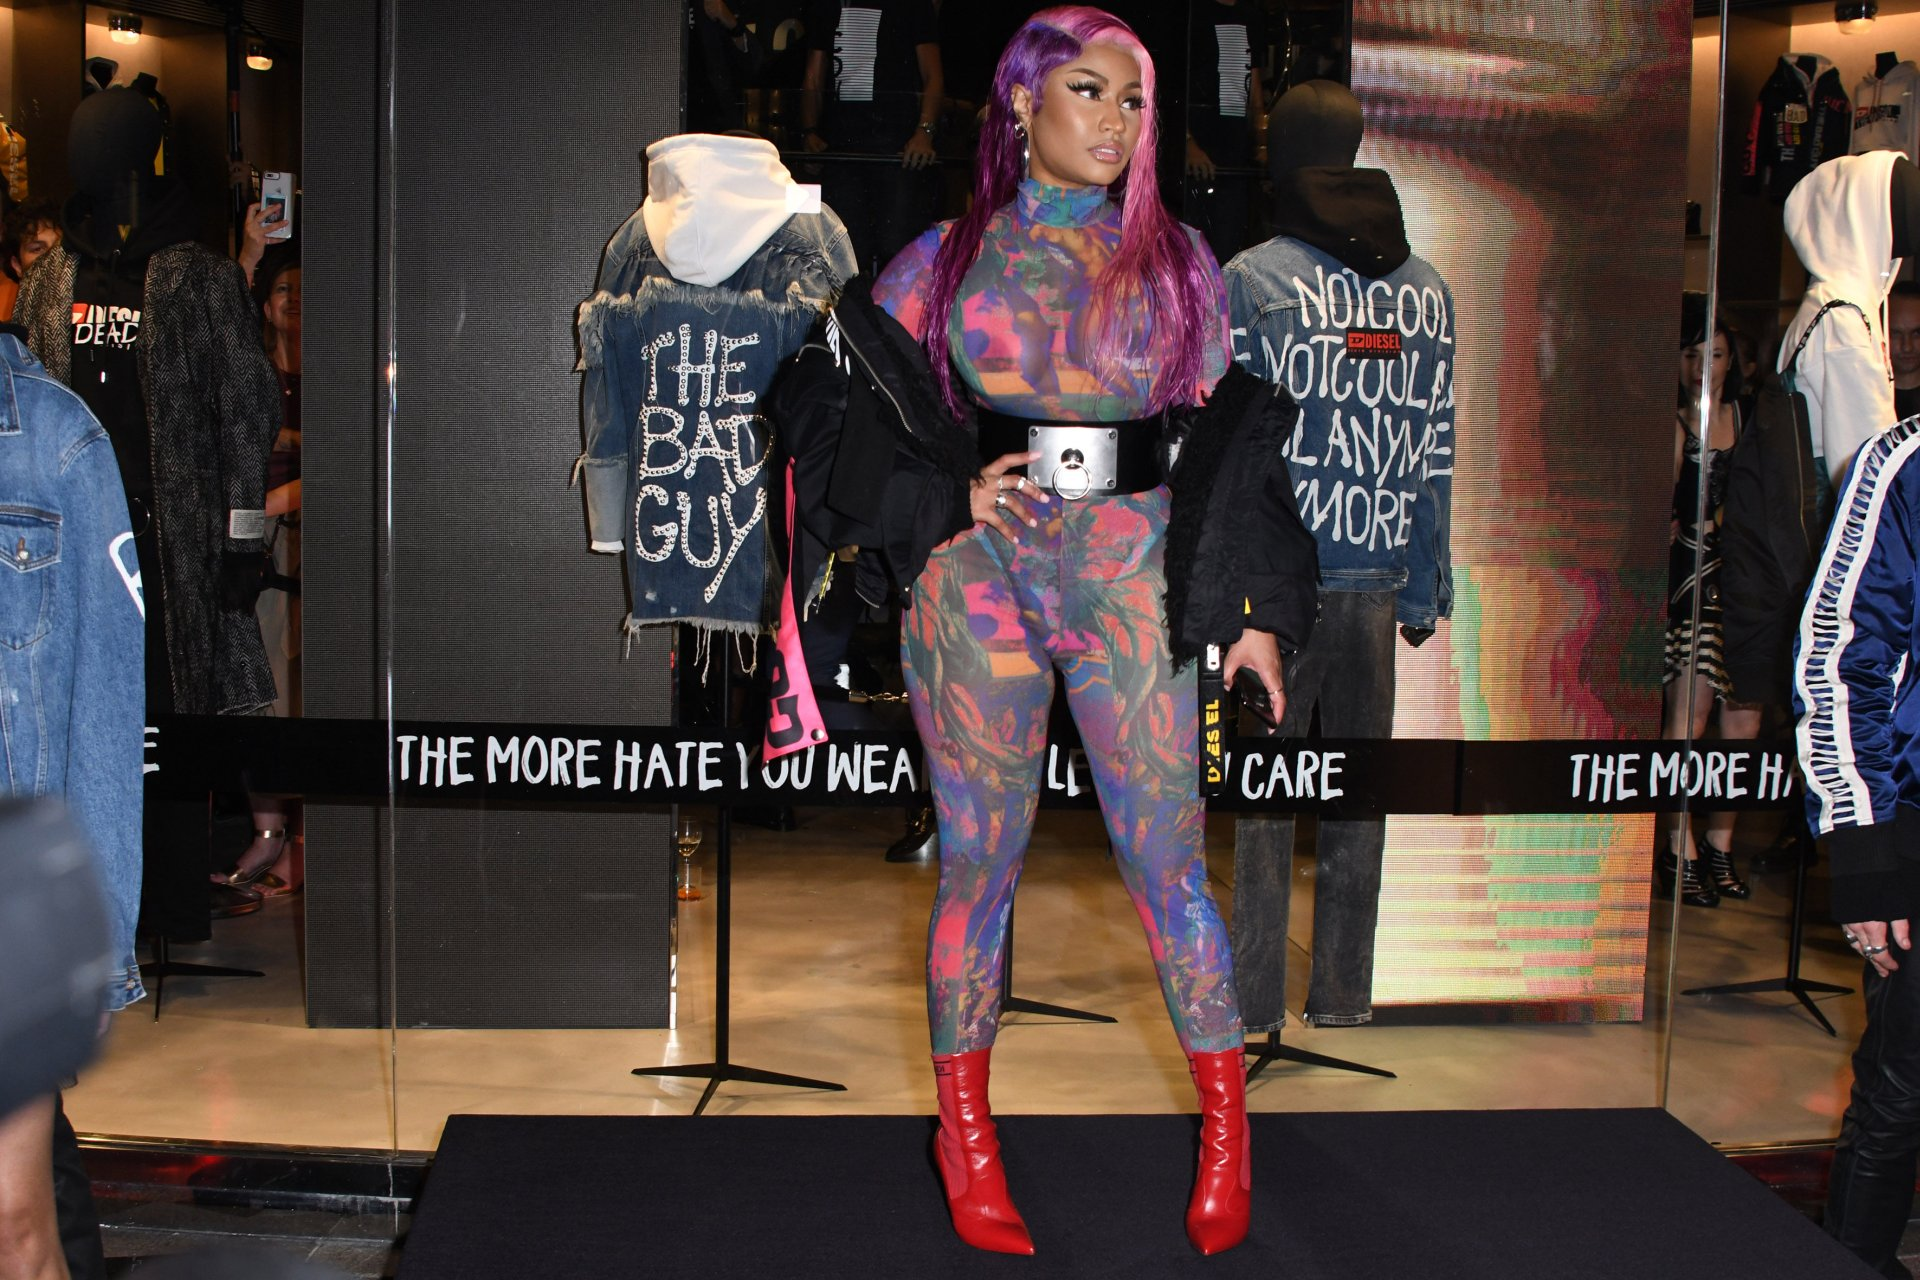 Nicki-Minaj-See-Through-TheFappeningBlog.com-26.jpg